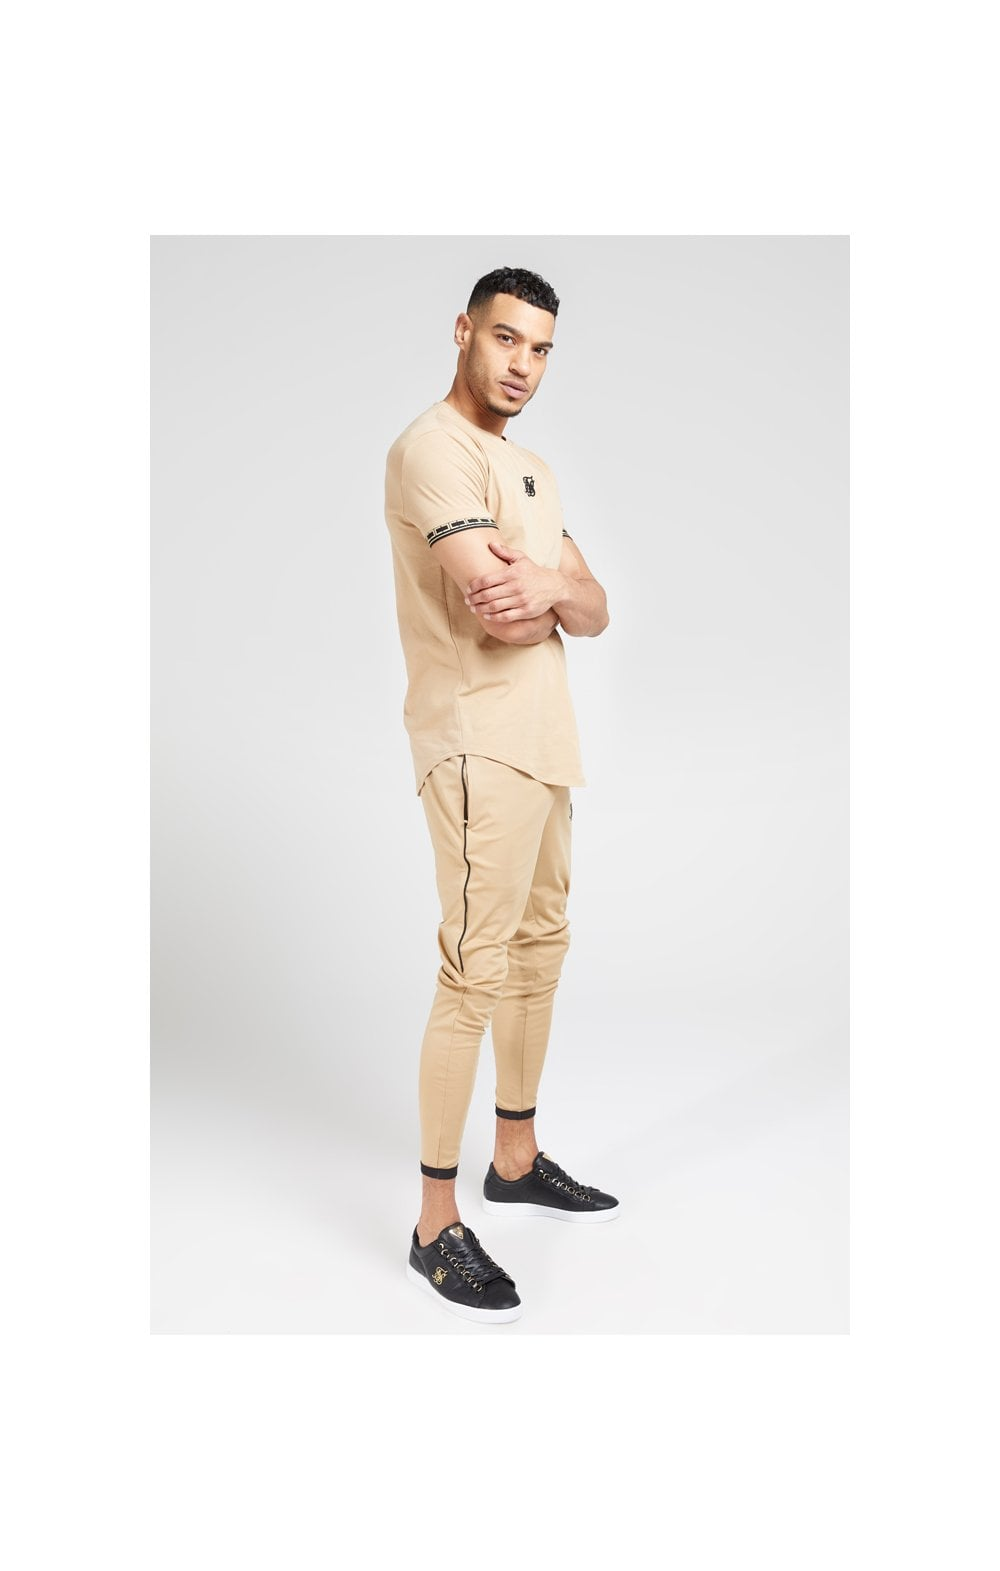 SikSilk S/S Scope Gym Tee – Beige (3)